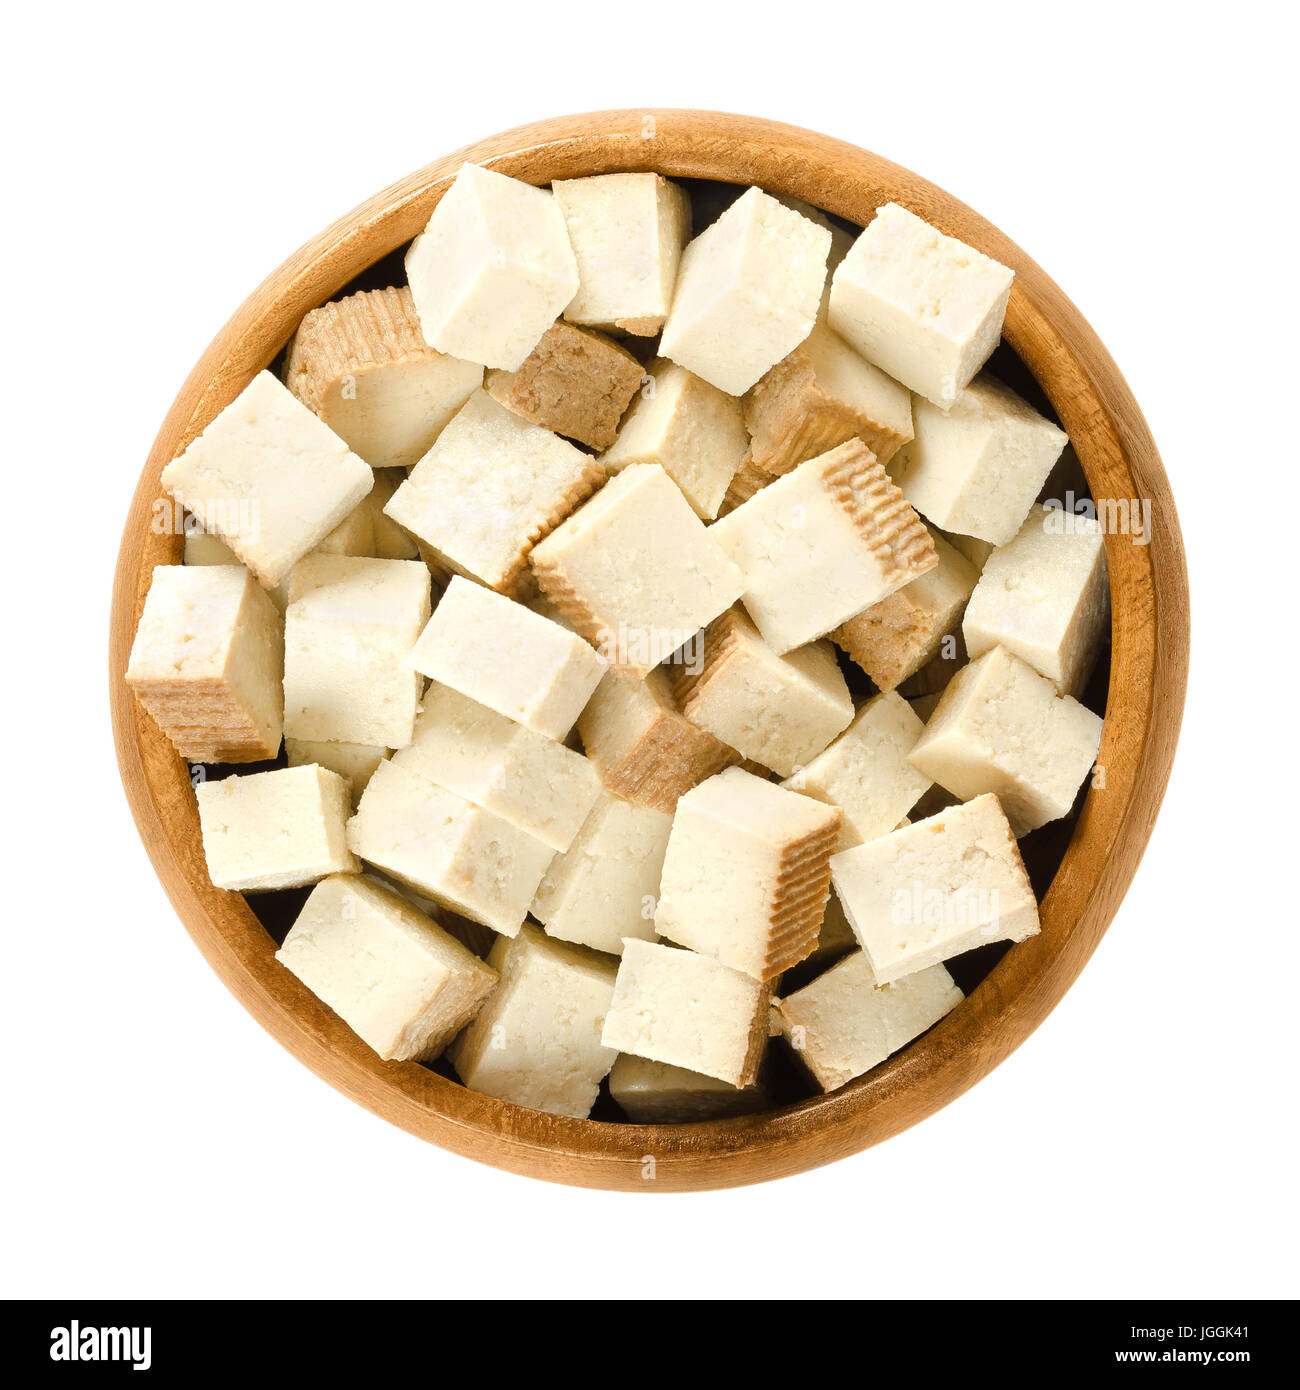 Smoked tofu cubes in wooden bowl. Bean curd. Coagulated soy milk, pressed into firm white blocks. Component of Asian - Stock Image